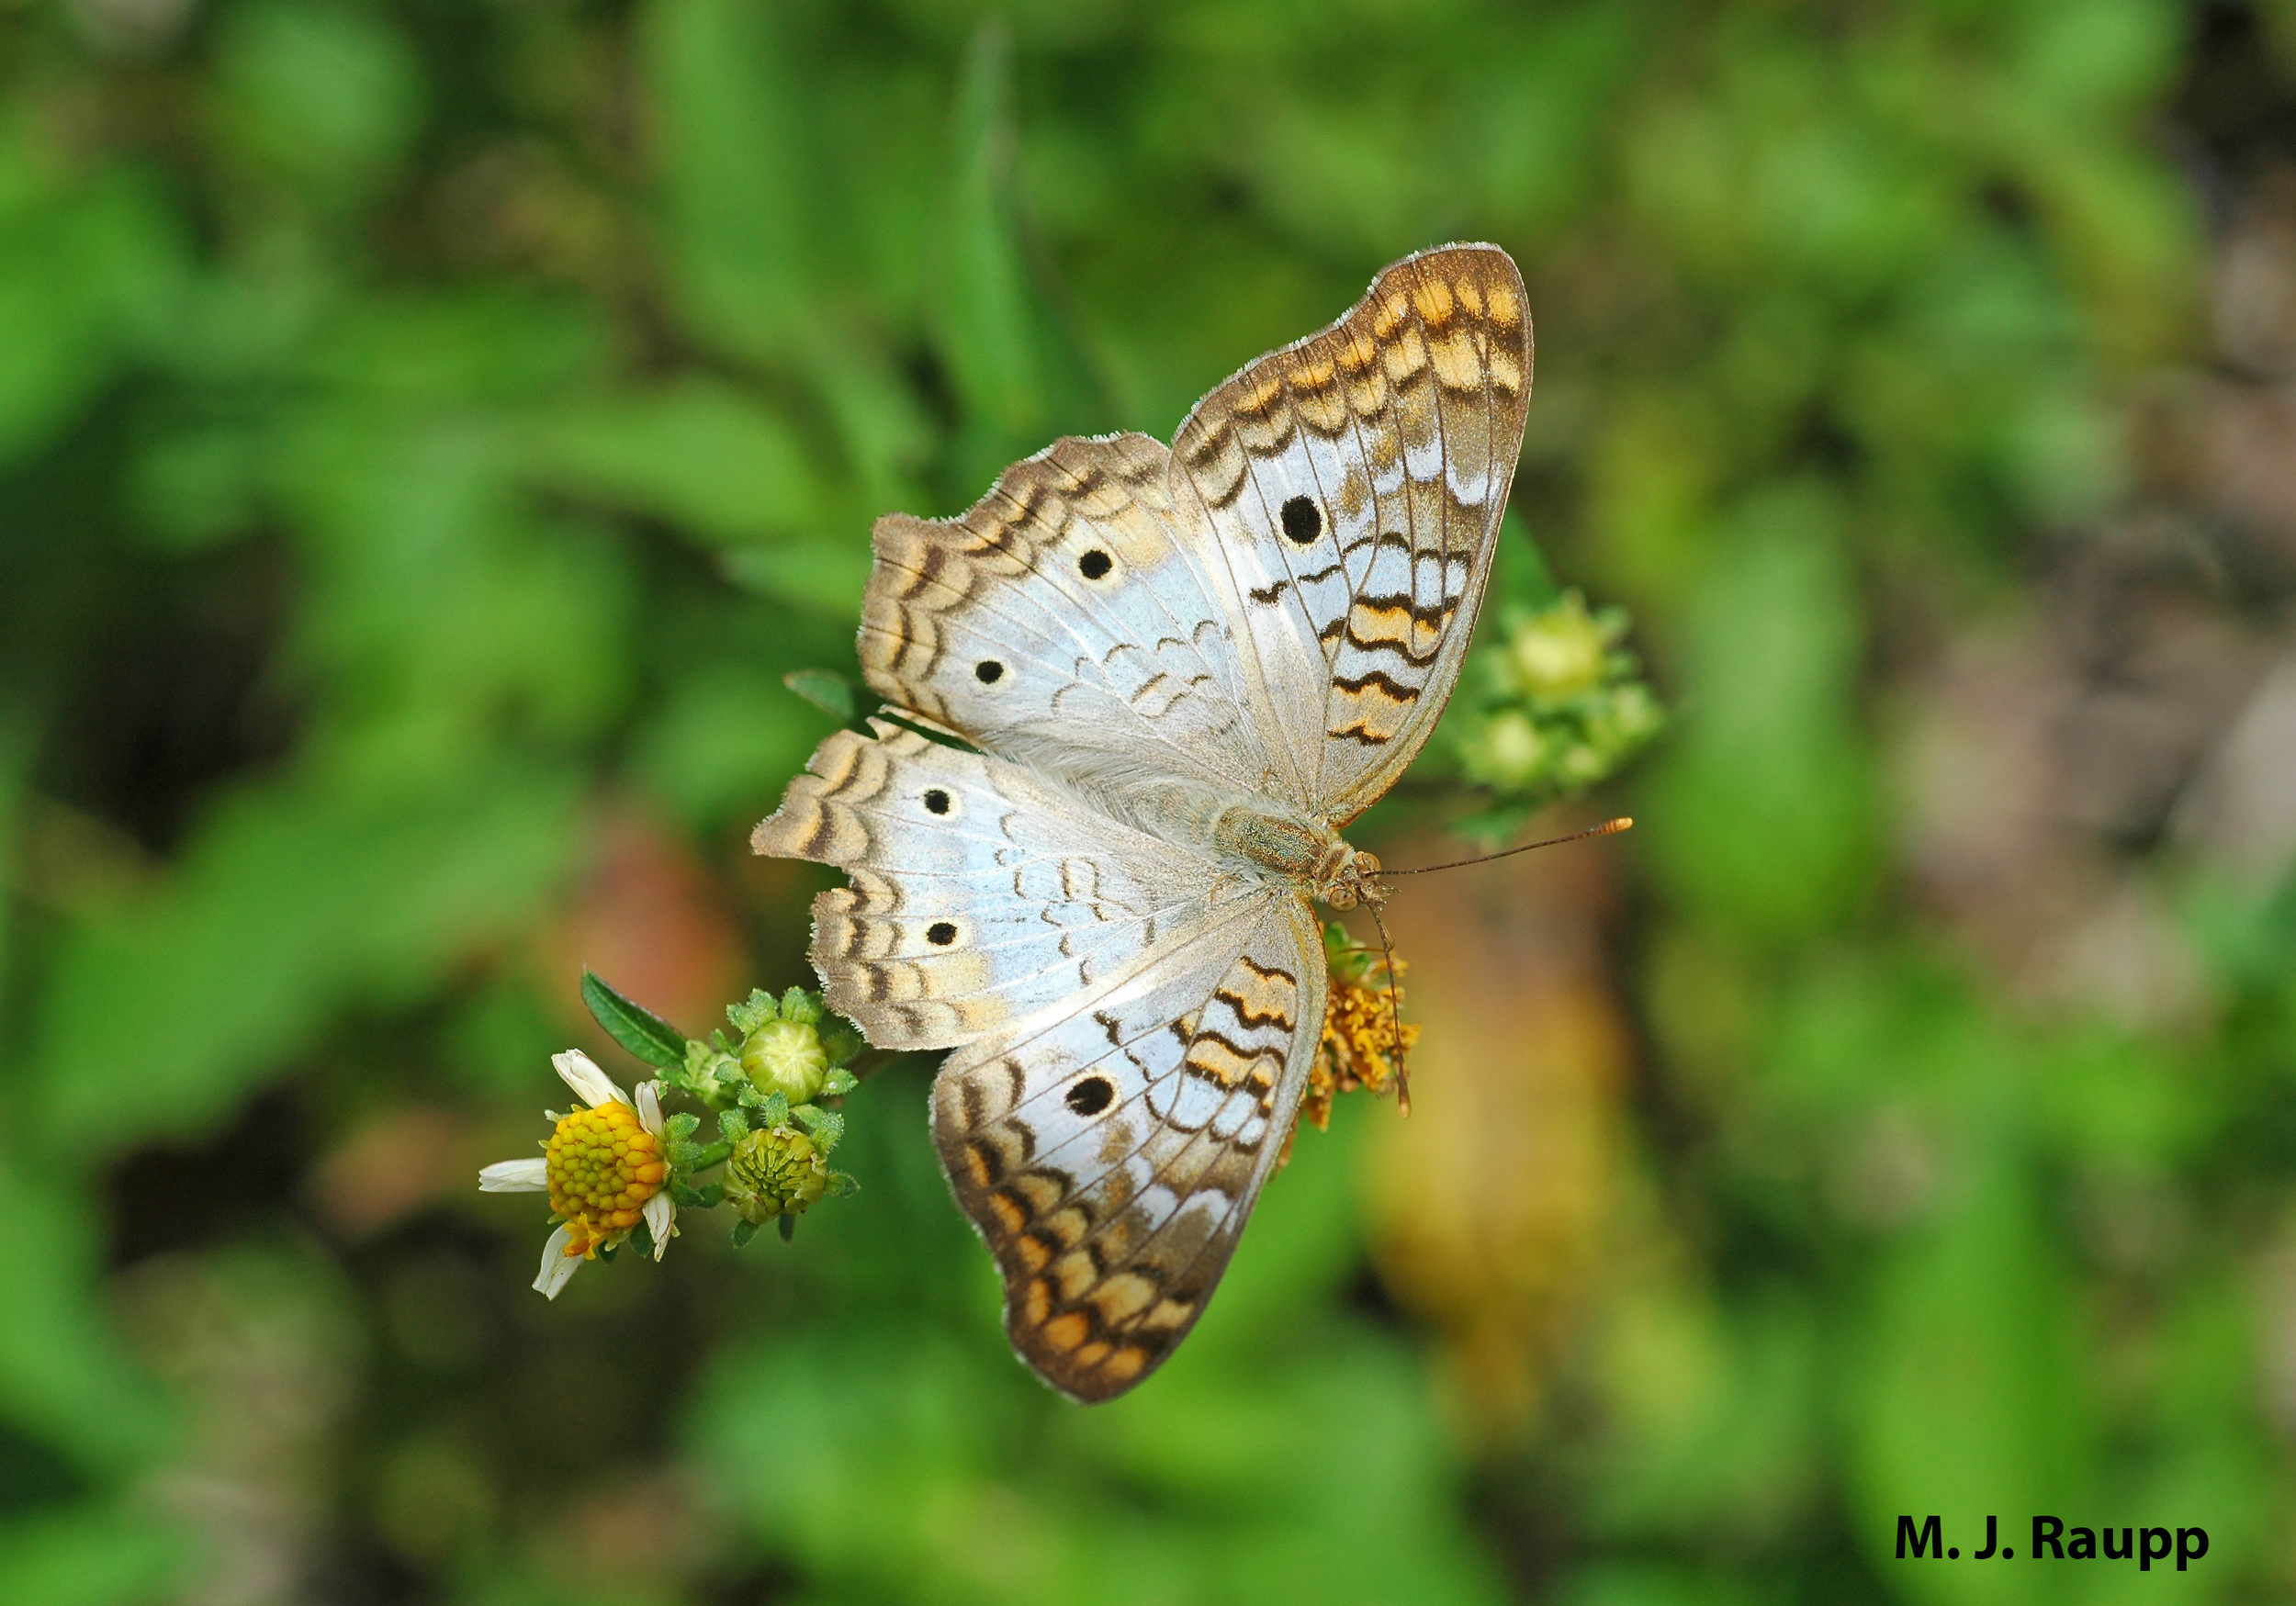 """A gorgeous white peacock butterfly surveys a marshy meadow at the edge of the rainforest in Belize.          Normal   0           false   false   false     EN-US   X-NONE   X-NONE                                                                                                                                                                                                                                                                                                                                                                           /* Style Definitions */  table.MsoNormalTable {mso-style-name:""""Table Normal""""; mso-tstyle-rowband-size:0; mso-tstyle-colband-size:0; mso-style-noshow:yes; mso-style-priority:99; mso-style-parent:""""""""; mso-padding-alt:0in 5.4pt 0in 5.4pt; mso-para-margin-top:0in; mso-para-margin-right:0in; mso-para-margin-bottom:10.0pt; mso-para-margin-left:0in; line-height:115%; mso-pagination:widow-orphan; font-size:11.0pt; font-family:""""Calibri"""",""""sans-serif""""; mso-ascii-font-family:Calibri; mso-ascii-theme-font:minor-latin; mso-hansi-font-family:Calibri; mso-hansi-theme-font:minor-latin;}"""